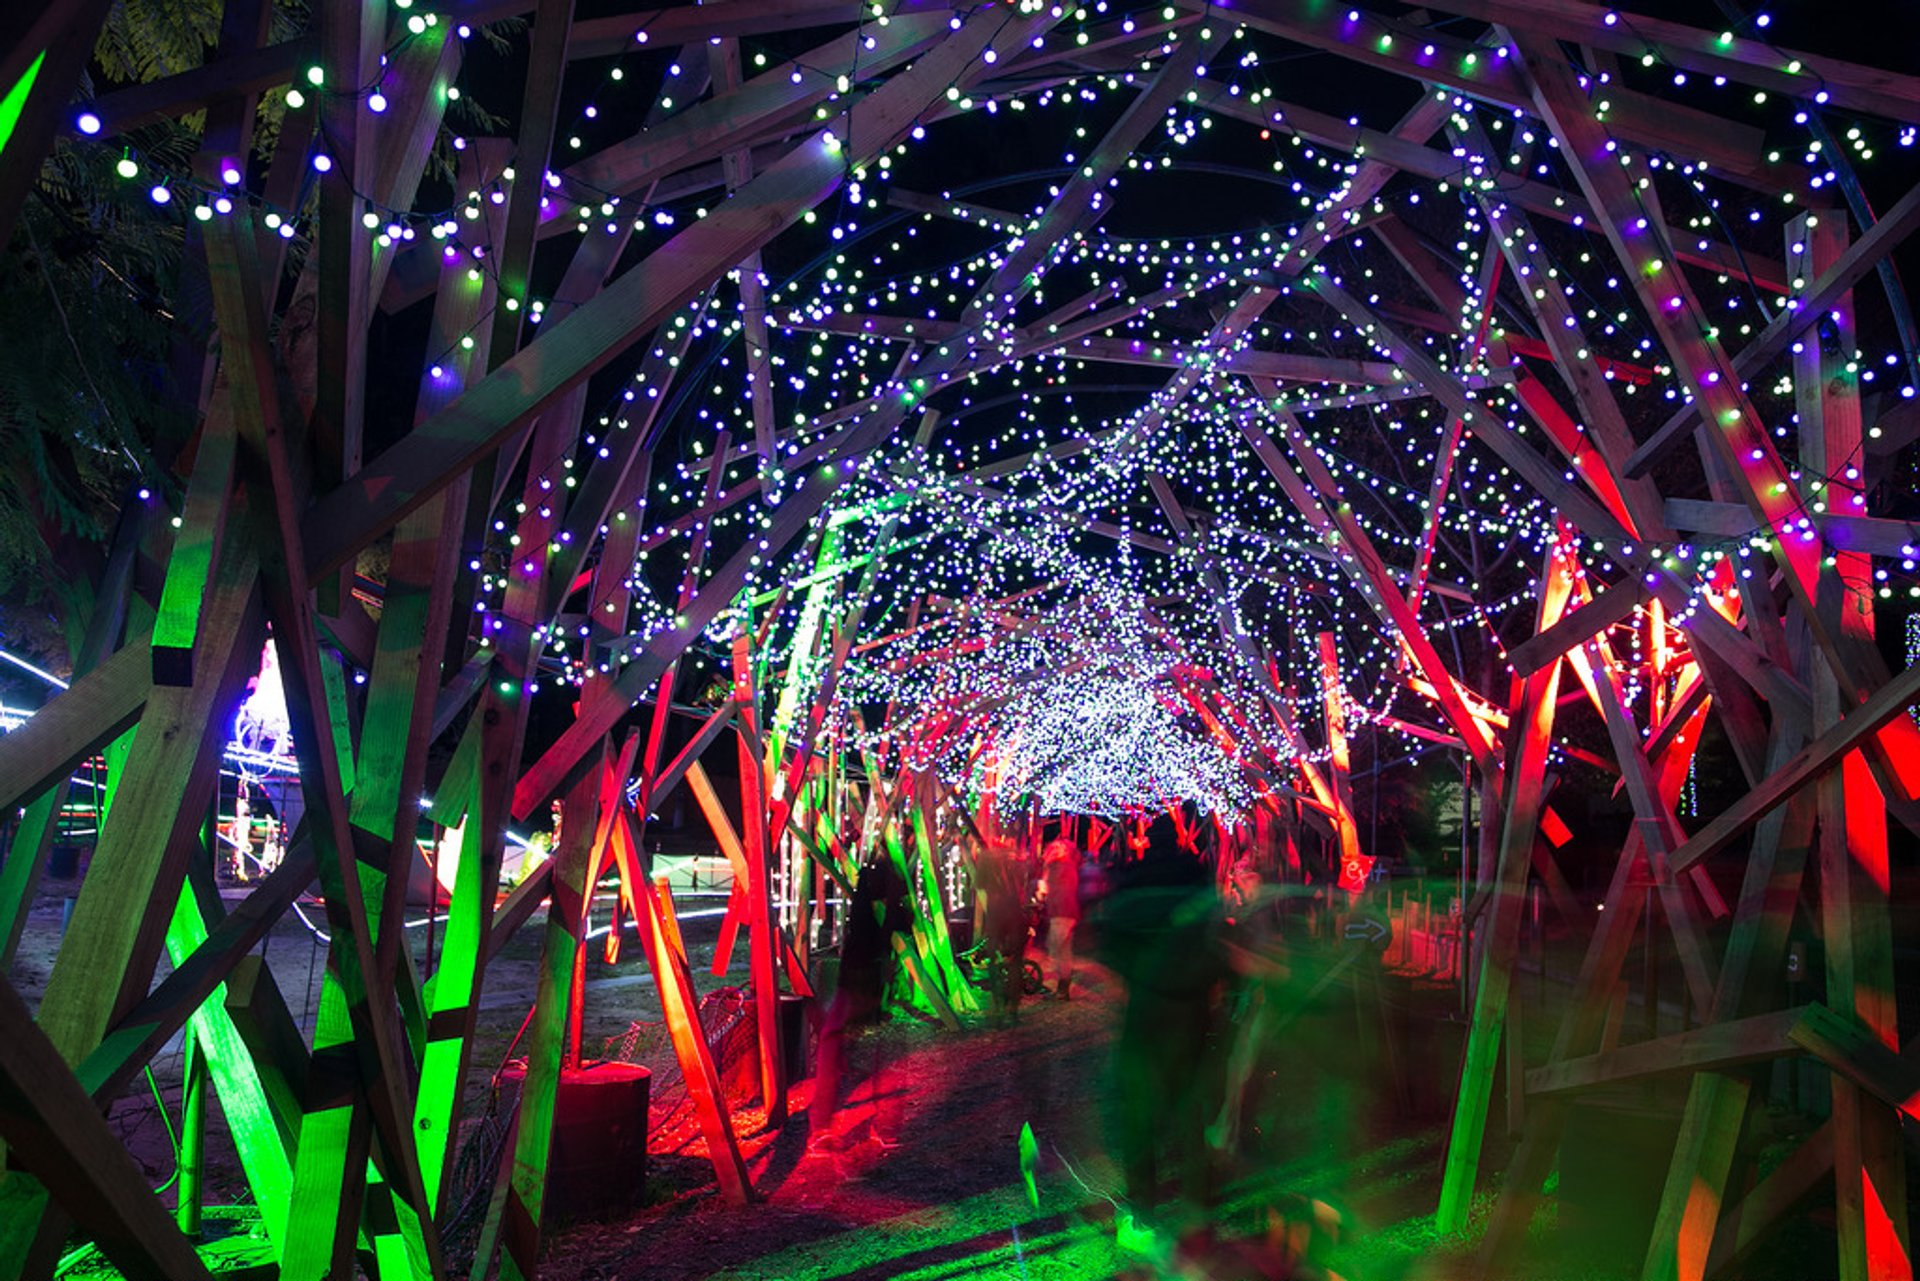 LA Zoo Lights in Los Angeles 2020 - Best Time